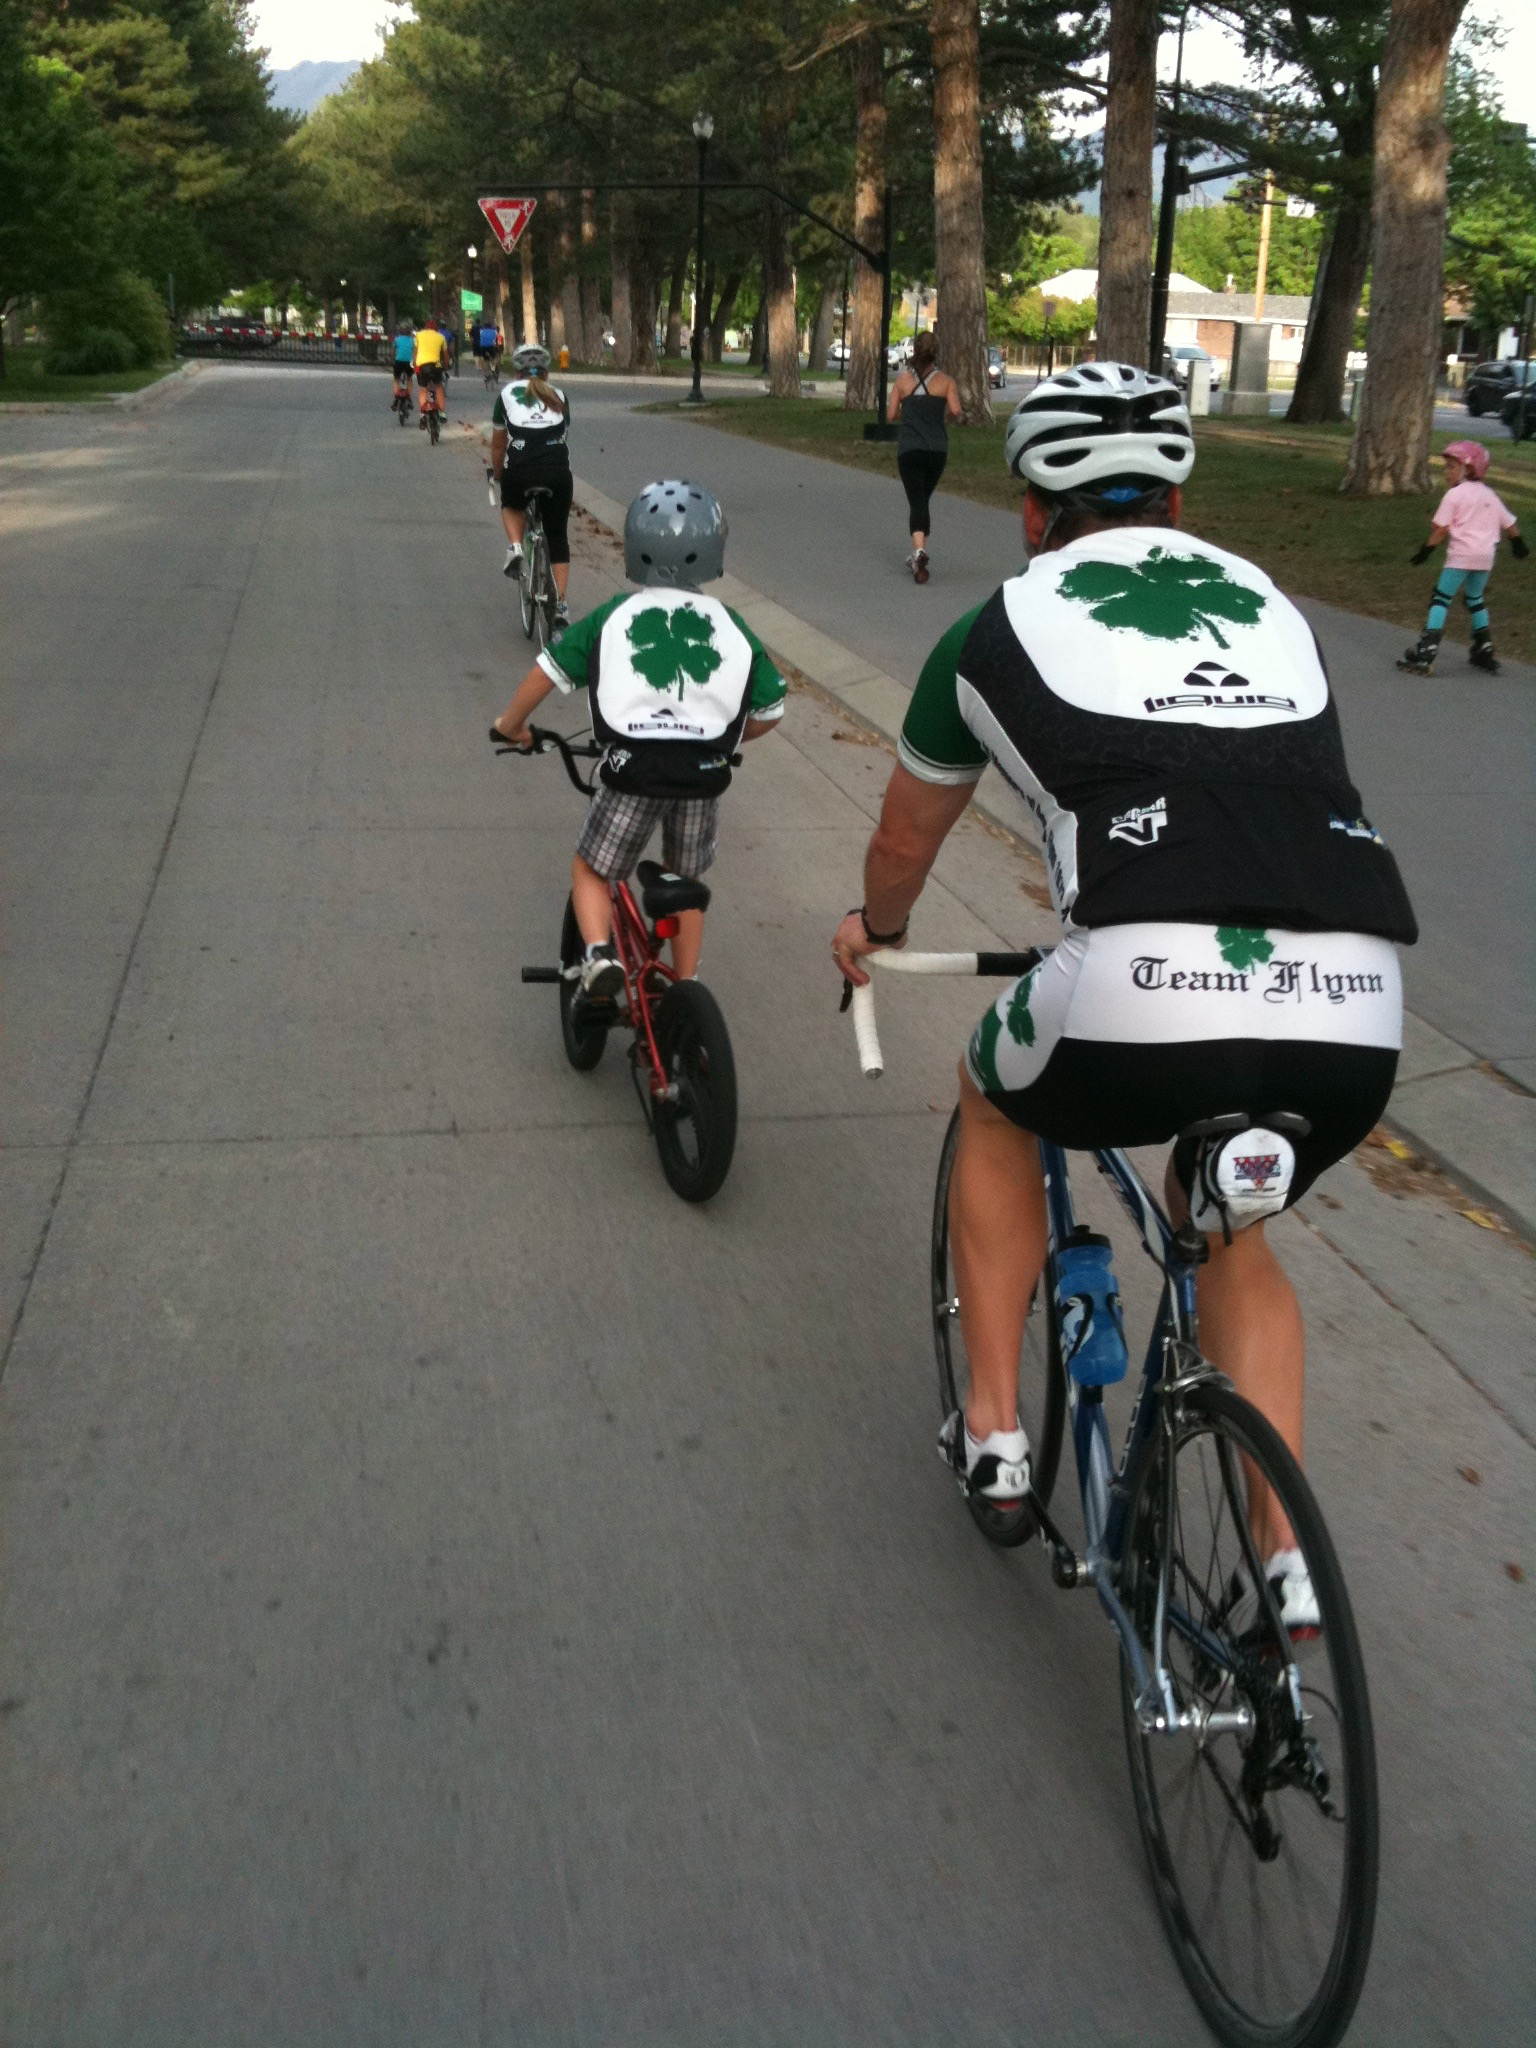 A family rides in the Ride of Silence to honor their fallen relative. Photo by Dave Iltis